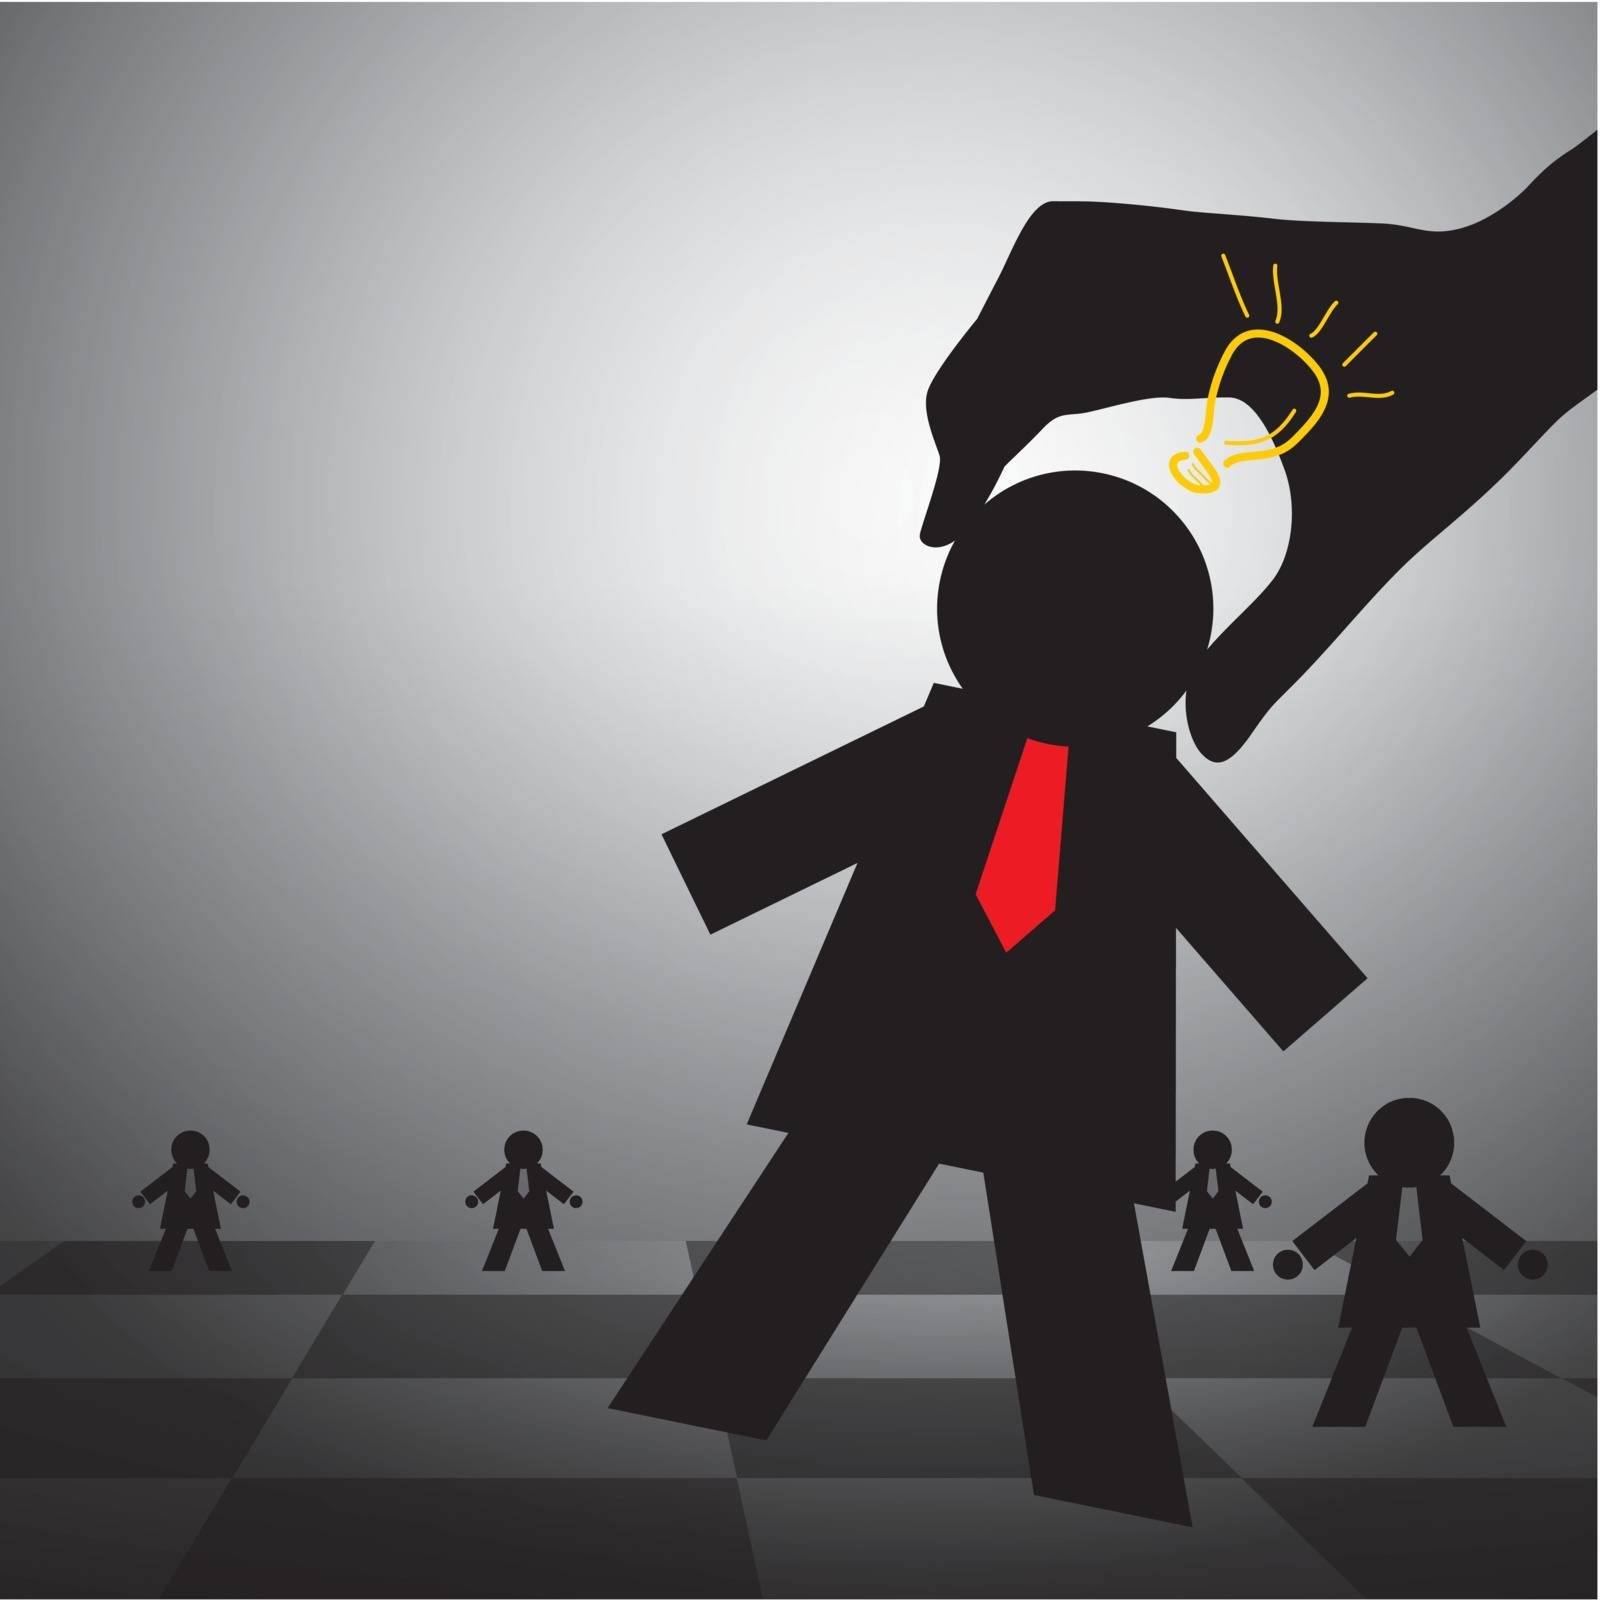 Chess concepts for business